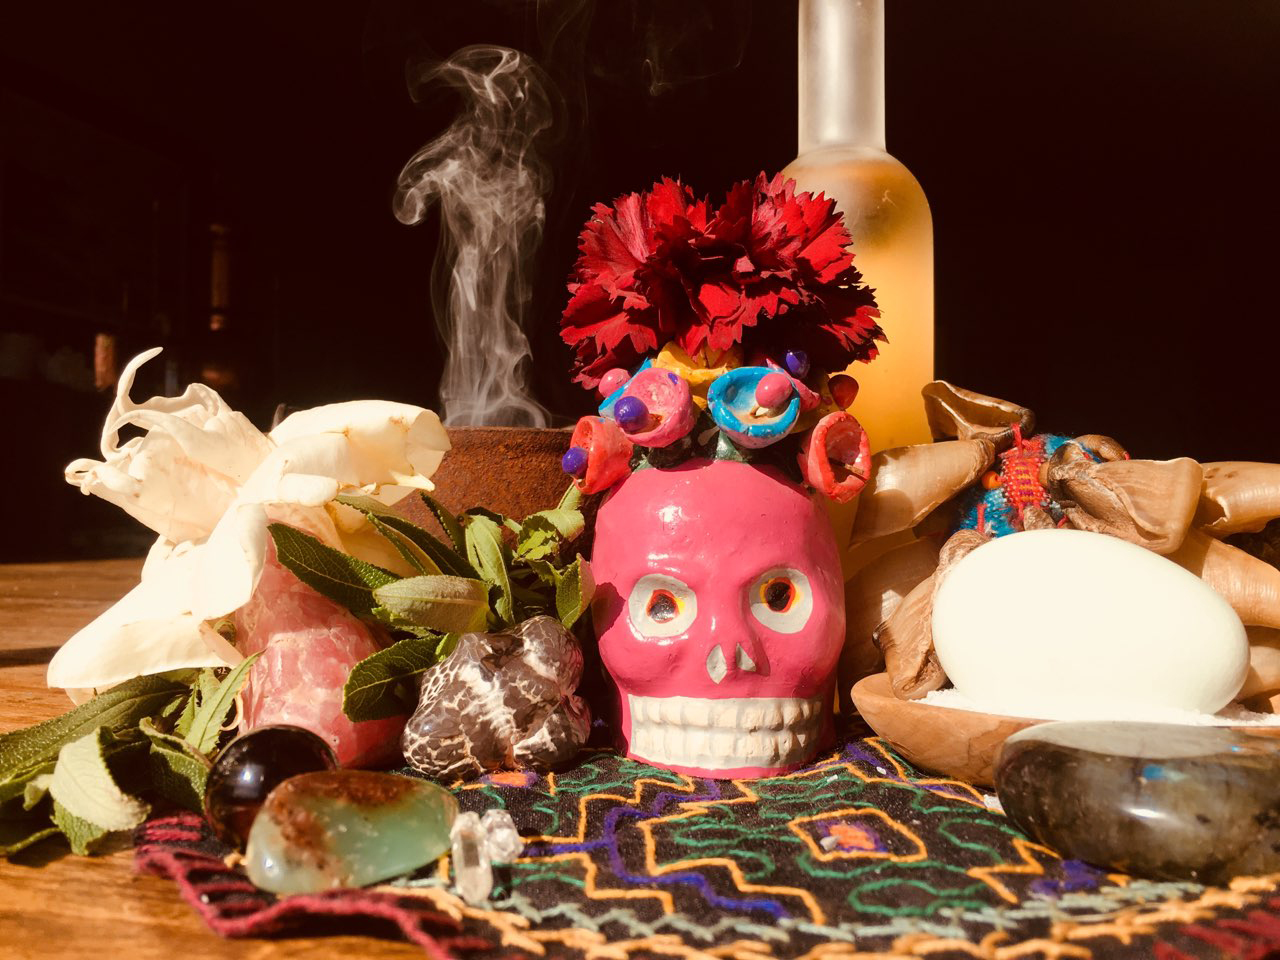 Sunday, April 29, 2018  5-8pm   Full Moon in Scorpio Limpia Ritual   Join us for an evening of limpia rituals under the transformative Scorpio Full Moon!  Together we will explore the power of spiritual clearing to purify our body, mind and spirit of heavy or negative energy.   Mistress Samantita will be our guide in demonstrating various types of traditional limpias (spiritual cleanses) from the curanderas of Mesoamerica. Samantita will share the use of eggs, blessed waters, sacred plants, incense & spiritual baths. Willing participants will receive clearings as part of our exploration.   It will be a sacred evening of magic, connection & lunar celebration!  Snacks & beverages will be provided afterward!  $15 Suggested Donation   *RSVP to joygallerysf@gmail.com to reserve your spot